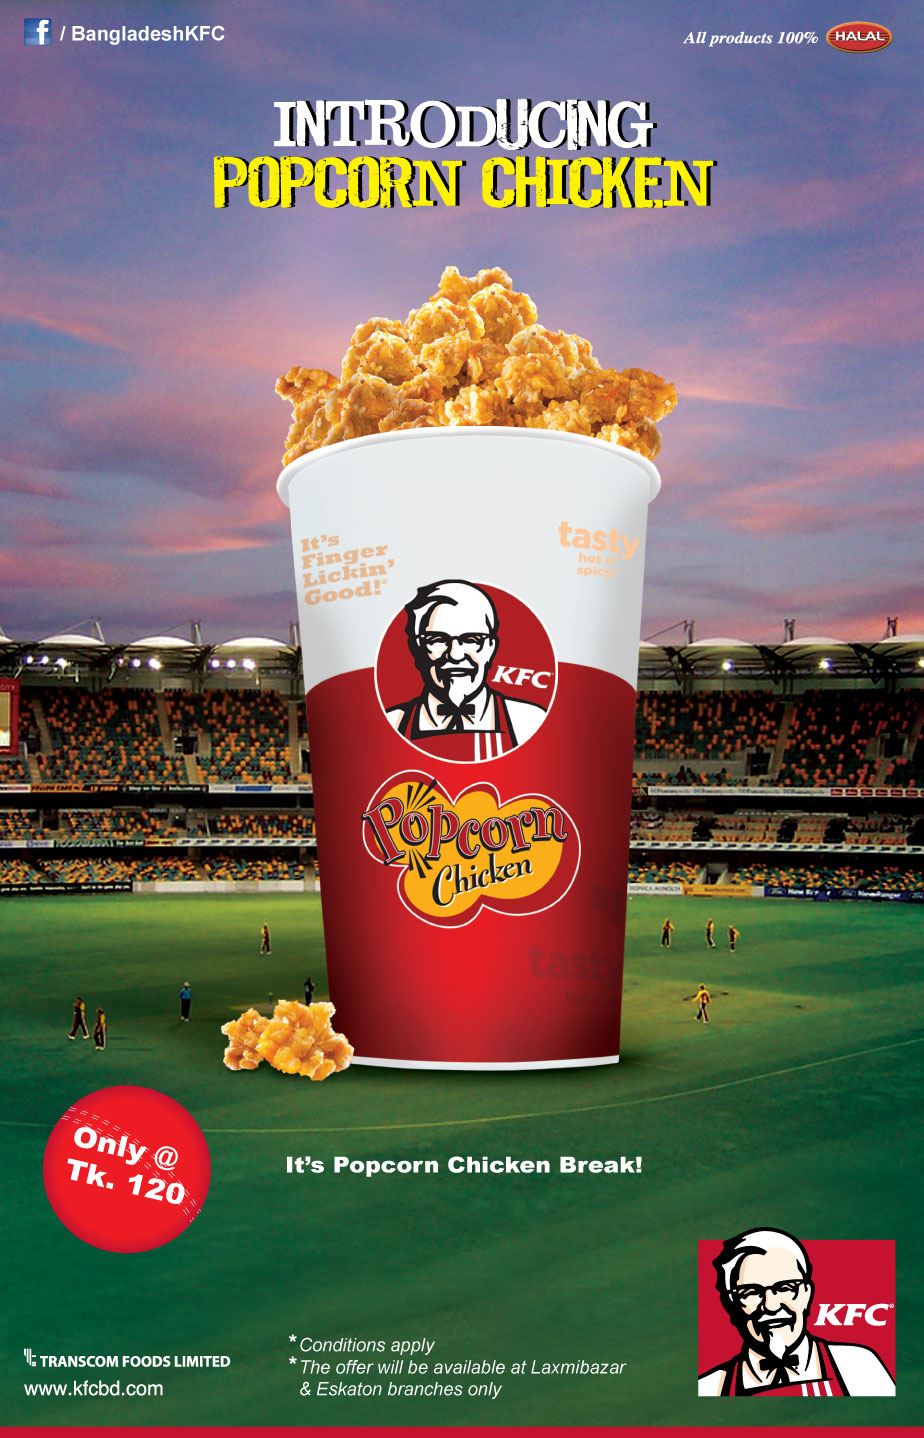 Showcasing Product Visualization here 3D model - KFC Promotional Graphics,2D+3D Combined